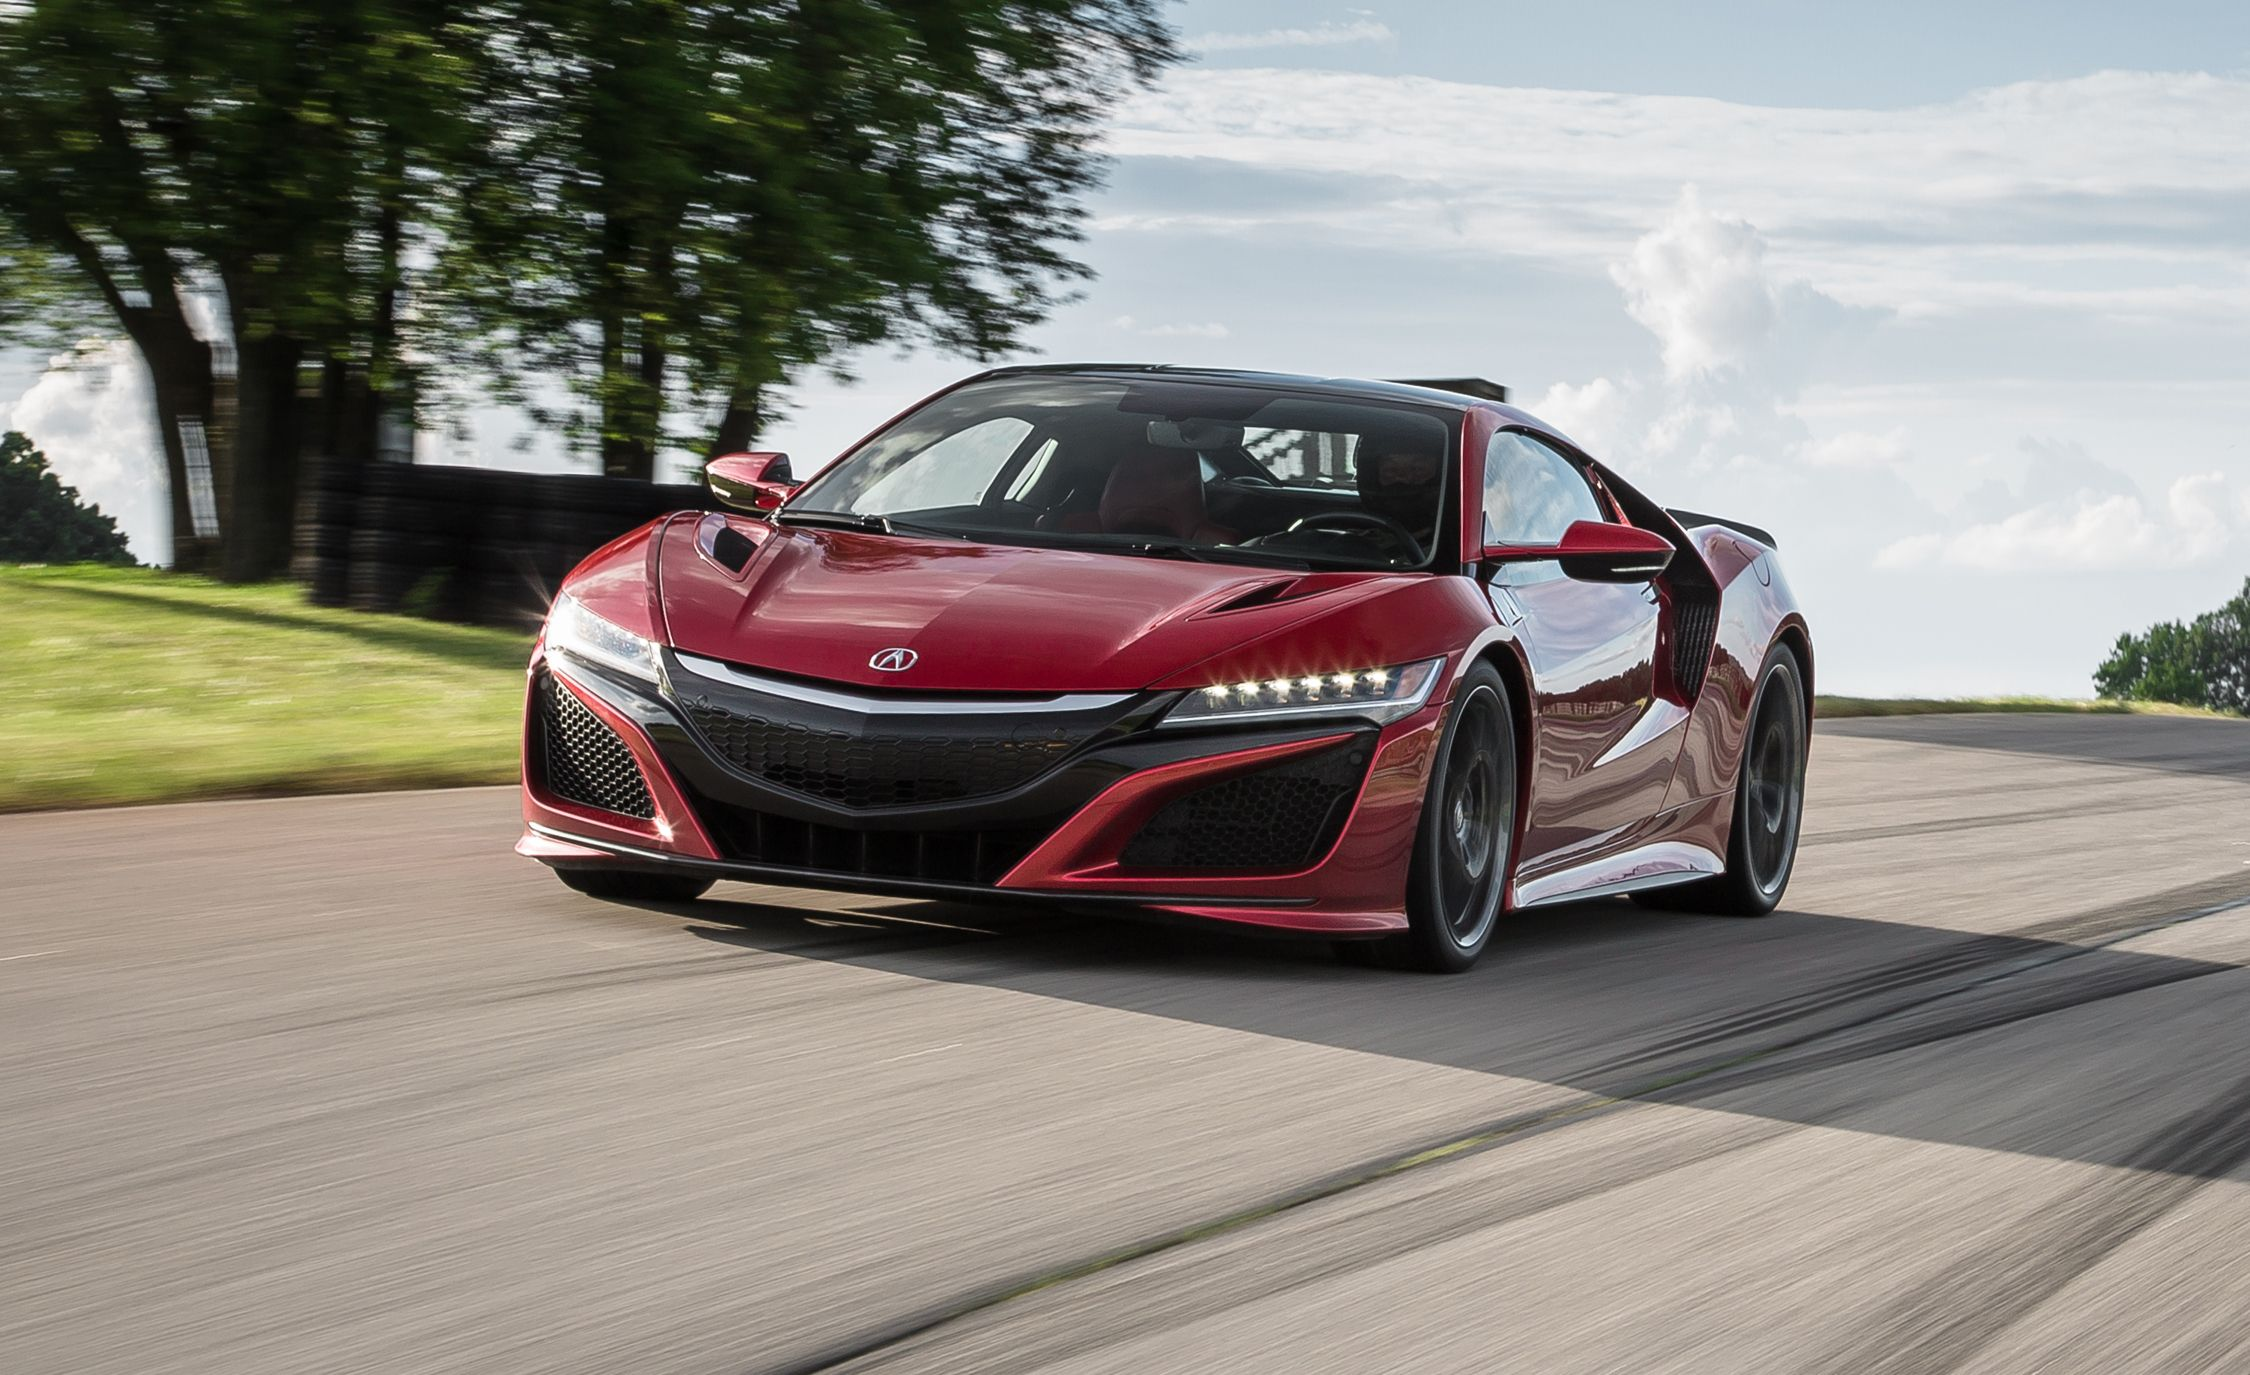 Acura NSX Supercar Full Test Review Car And Driver - Acura nsx motor